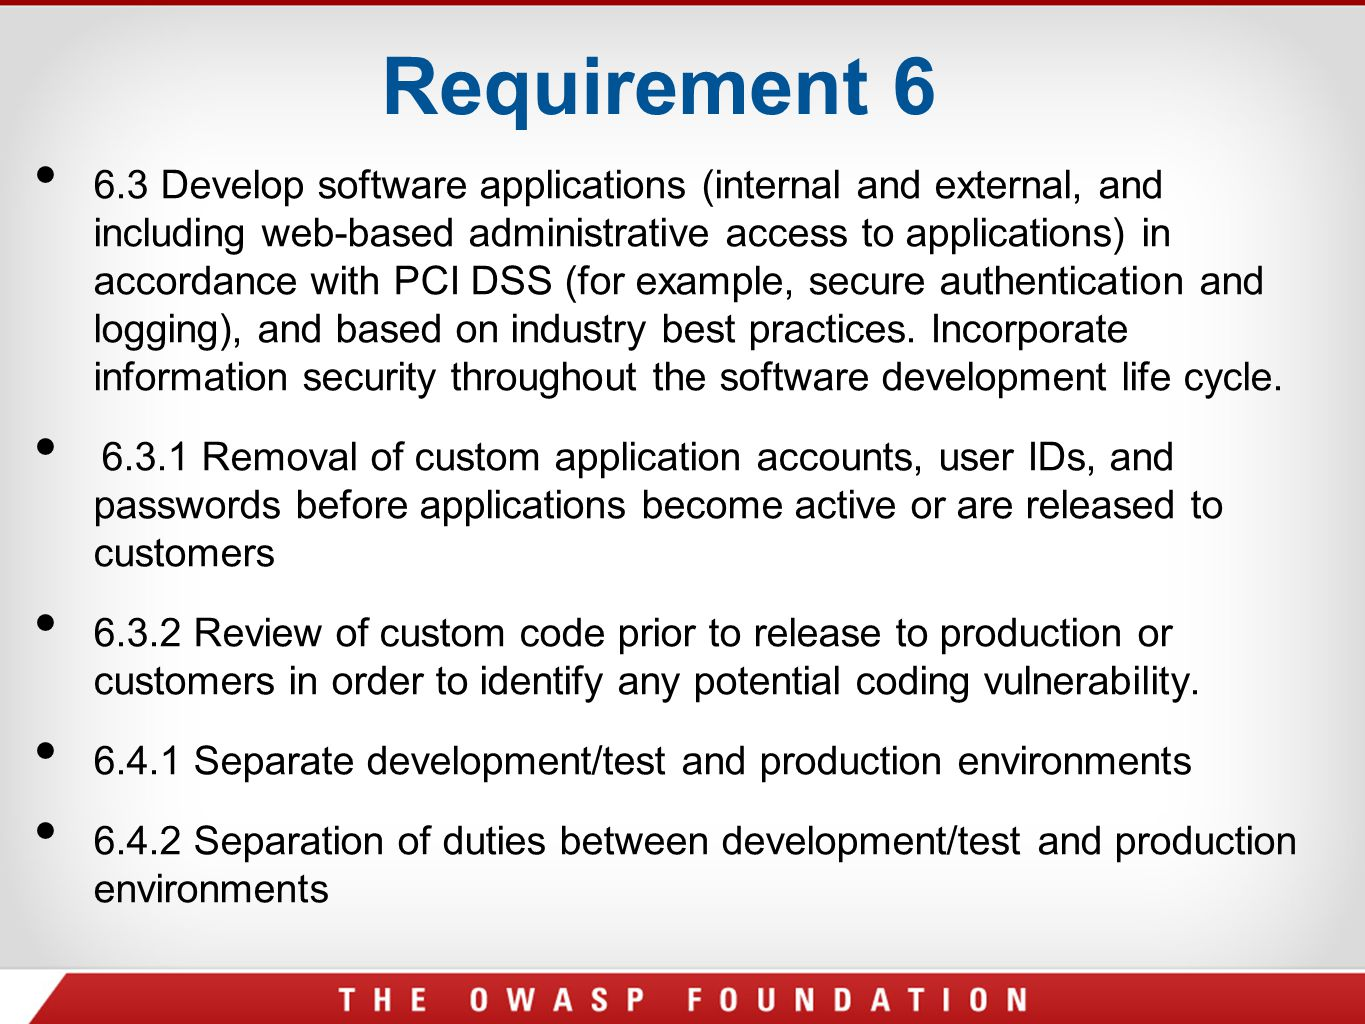 6.3 Develop software applications (internal and external, and including web-based administrative access to applications) in accordance with PCI DSS (f